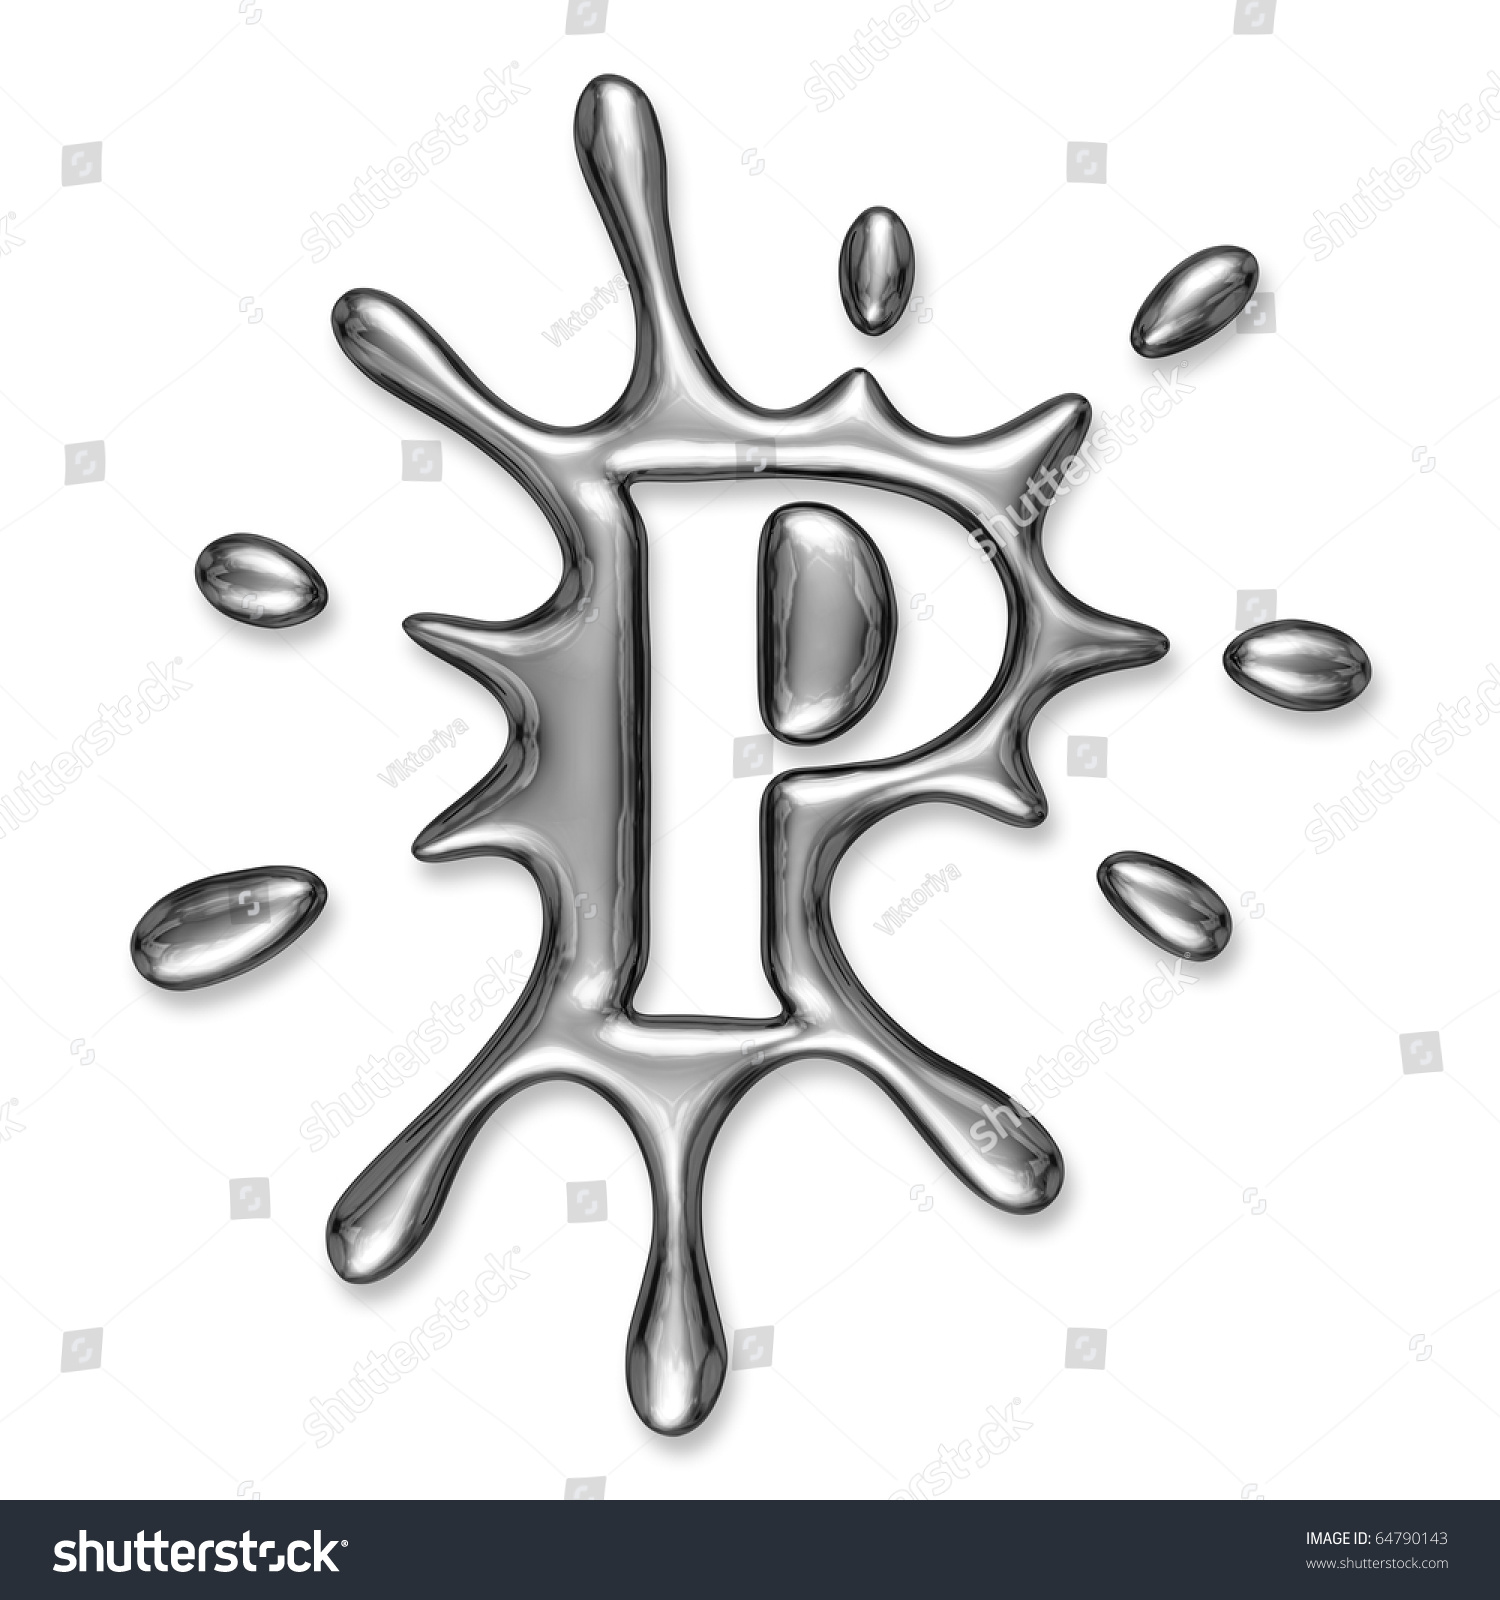 liquid metal letter s alphabet symbol isolated on a white